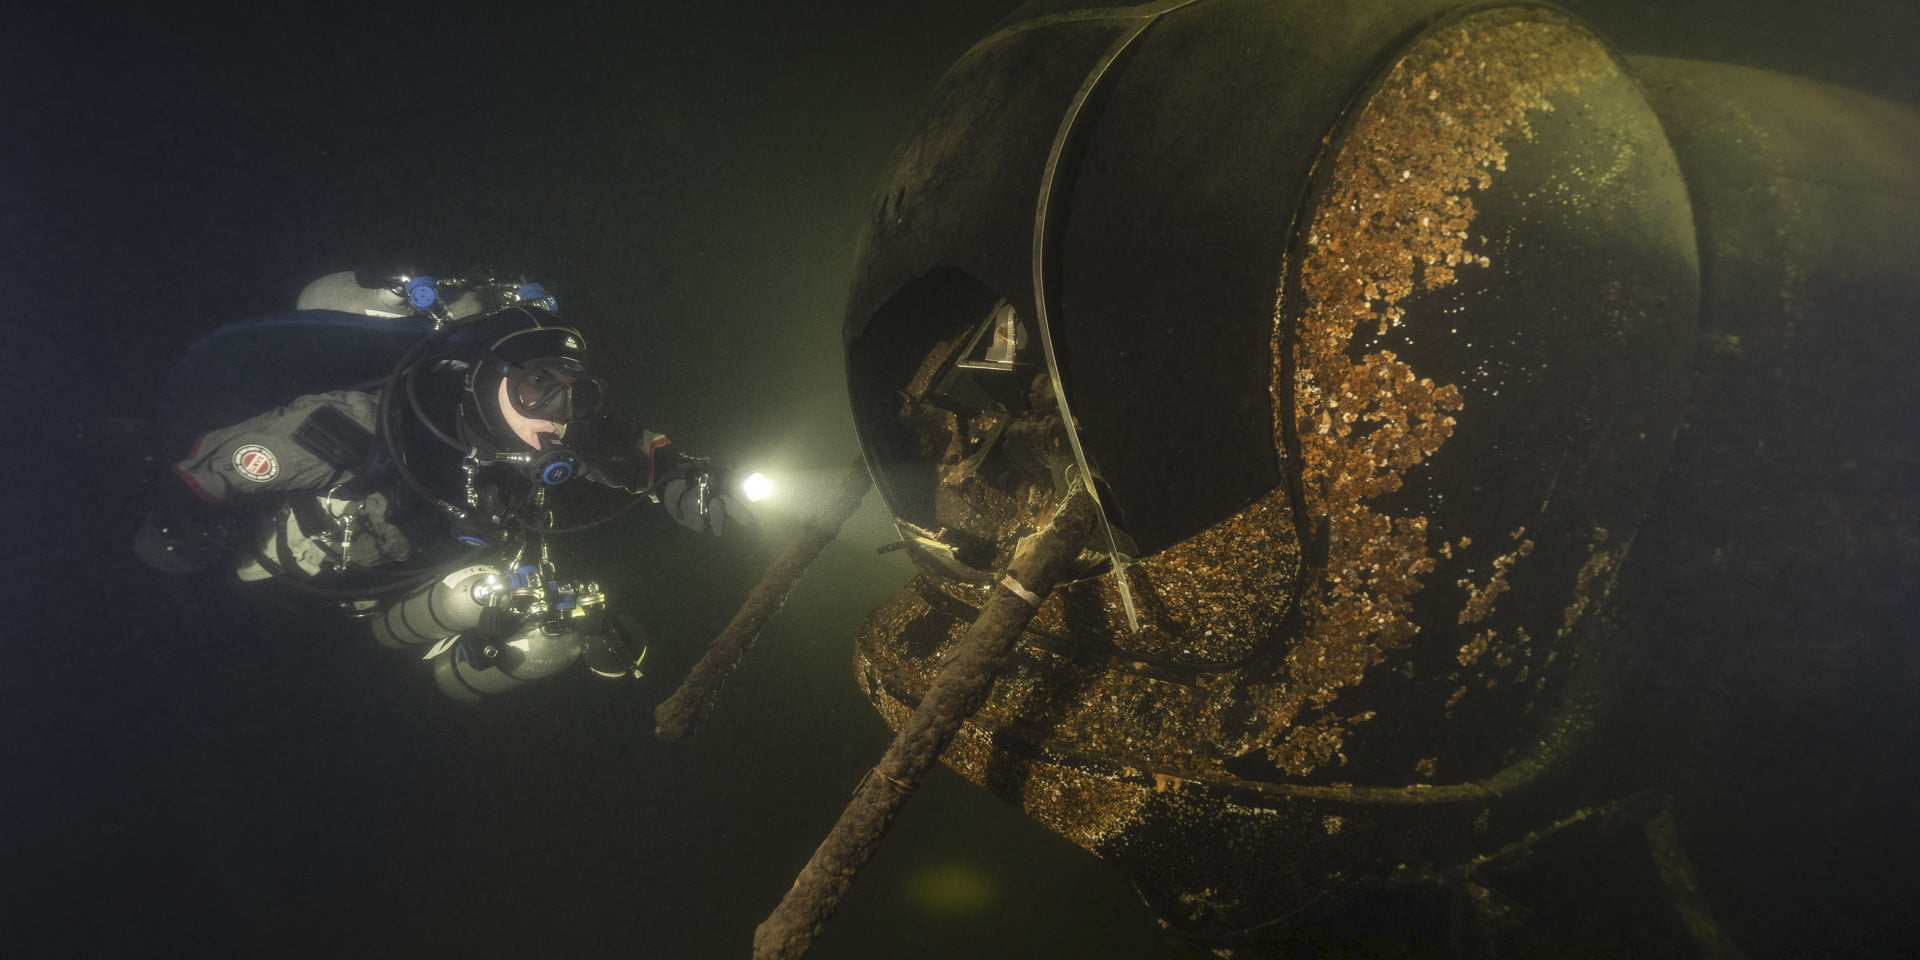 How a clever photography trick is bringing Seattle's shipwrecks to the surface